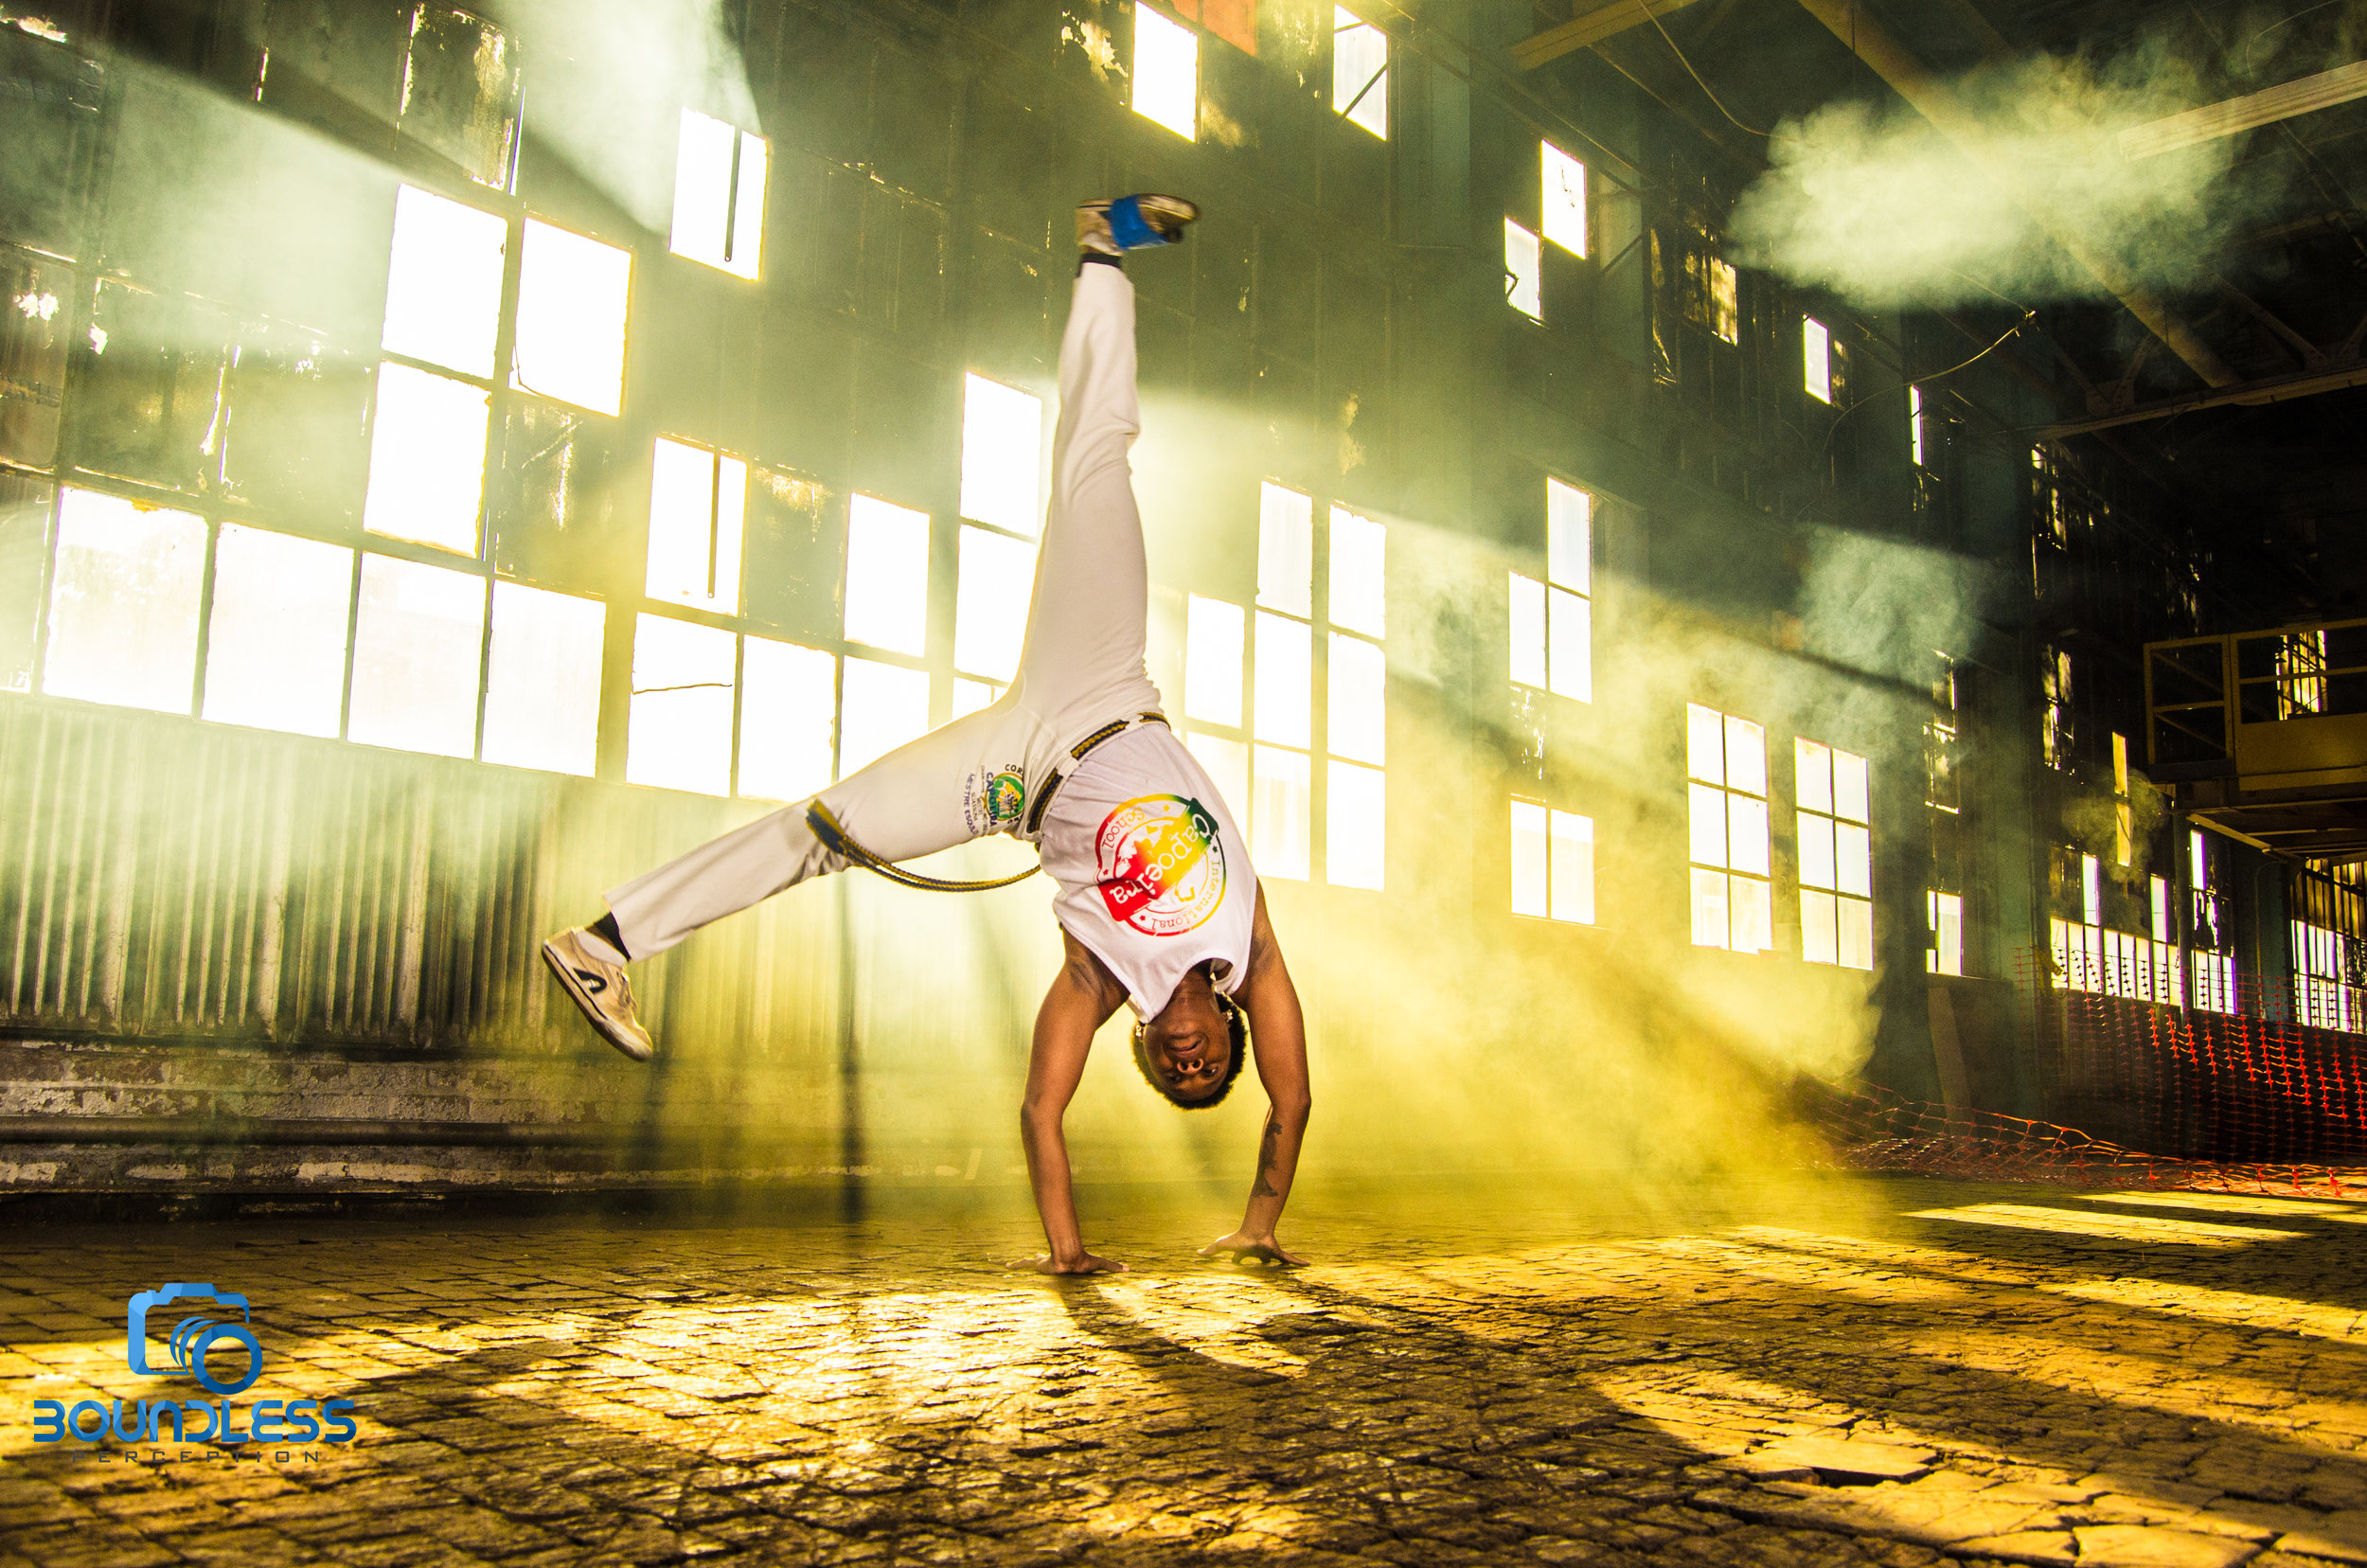 Capoeira Photo Shoot-7858.jpg